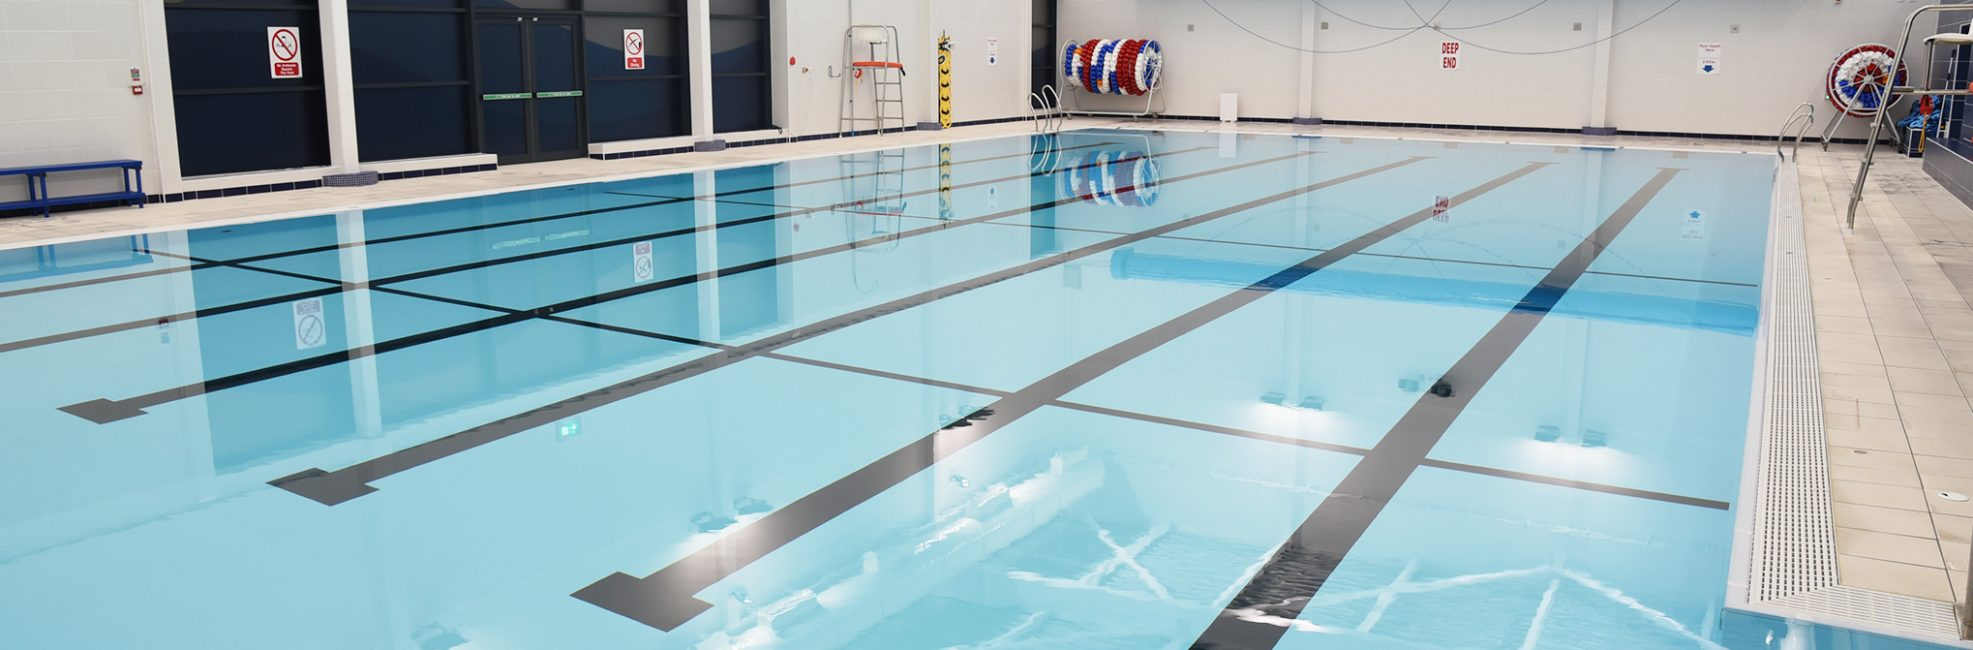 Royton Leisure Centre Gym Swim Classes Spin Studio